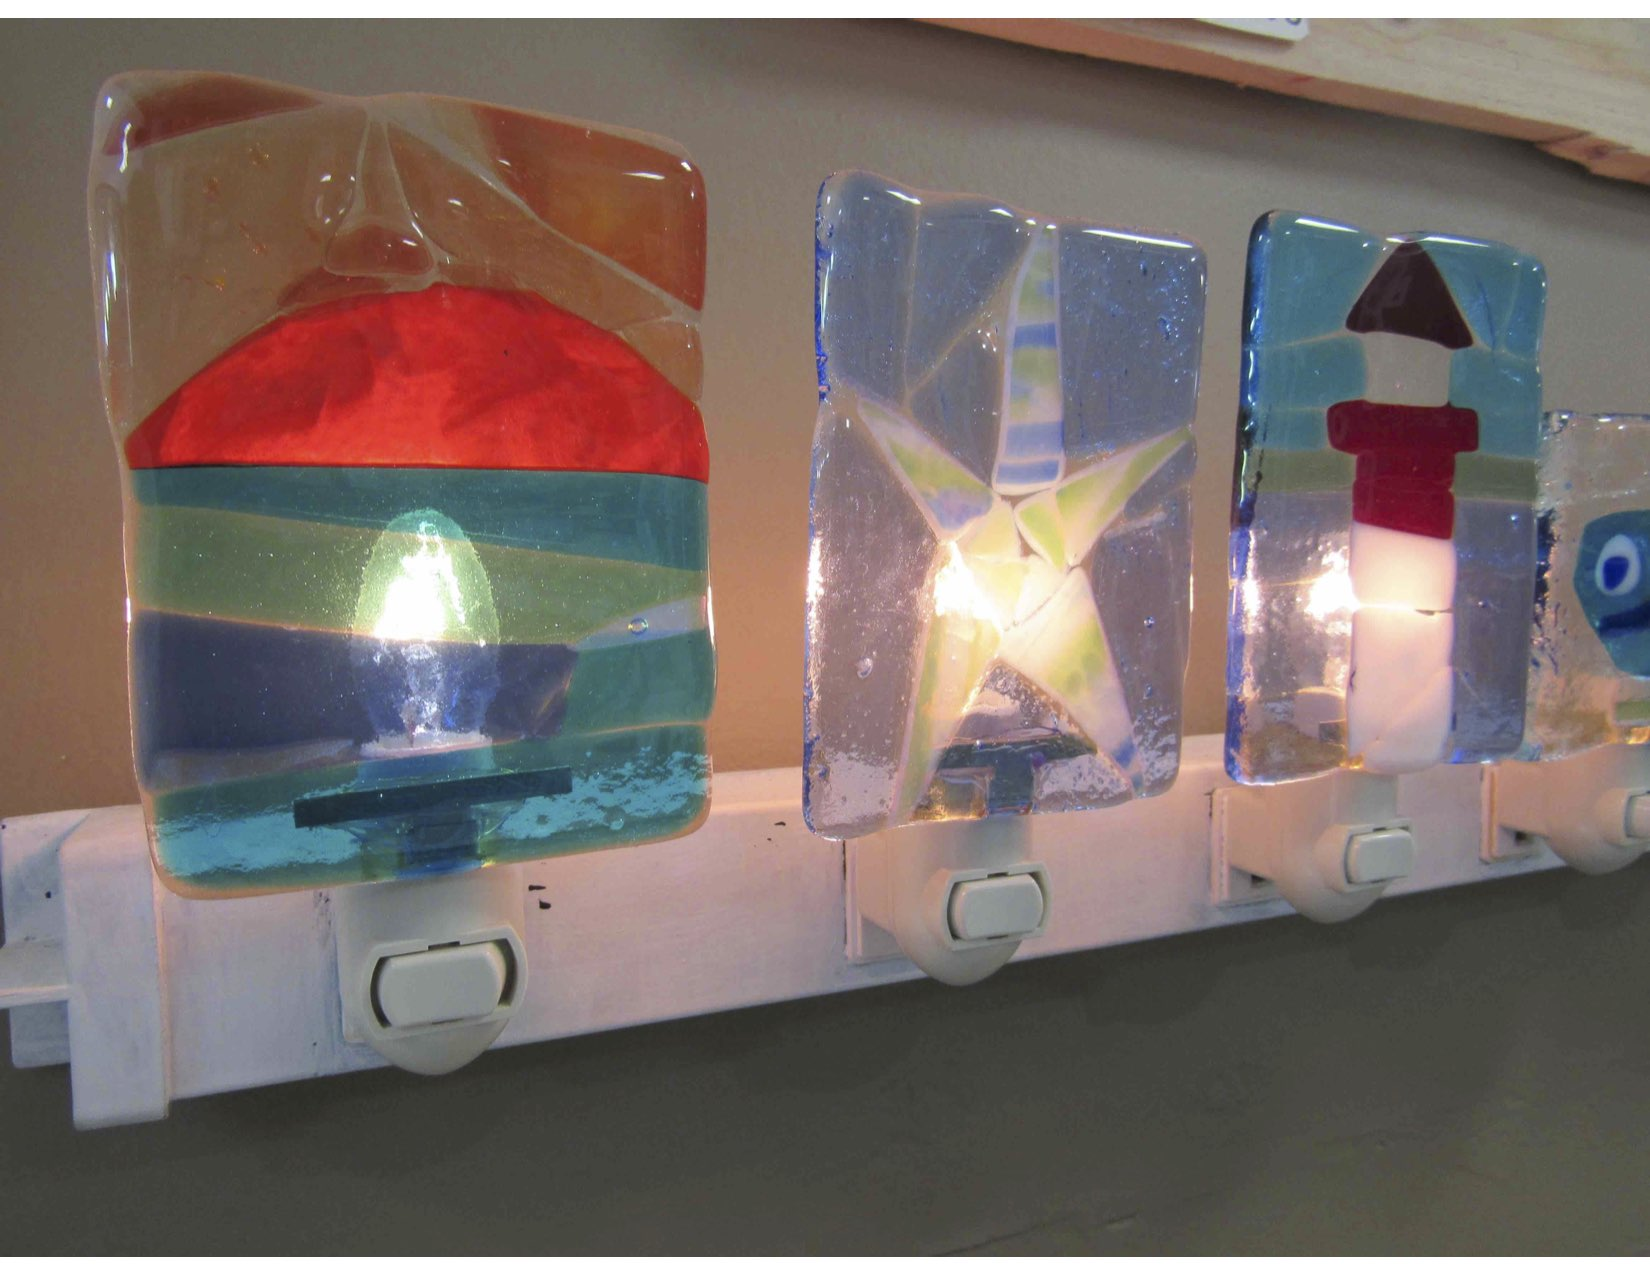 A group of finished nightlights, aren't they so fun?